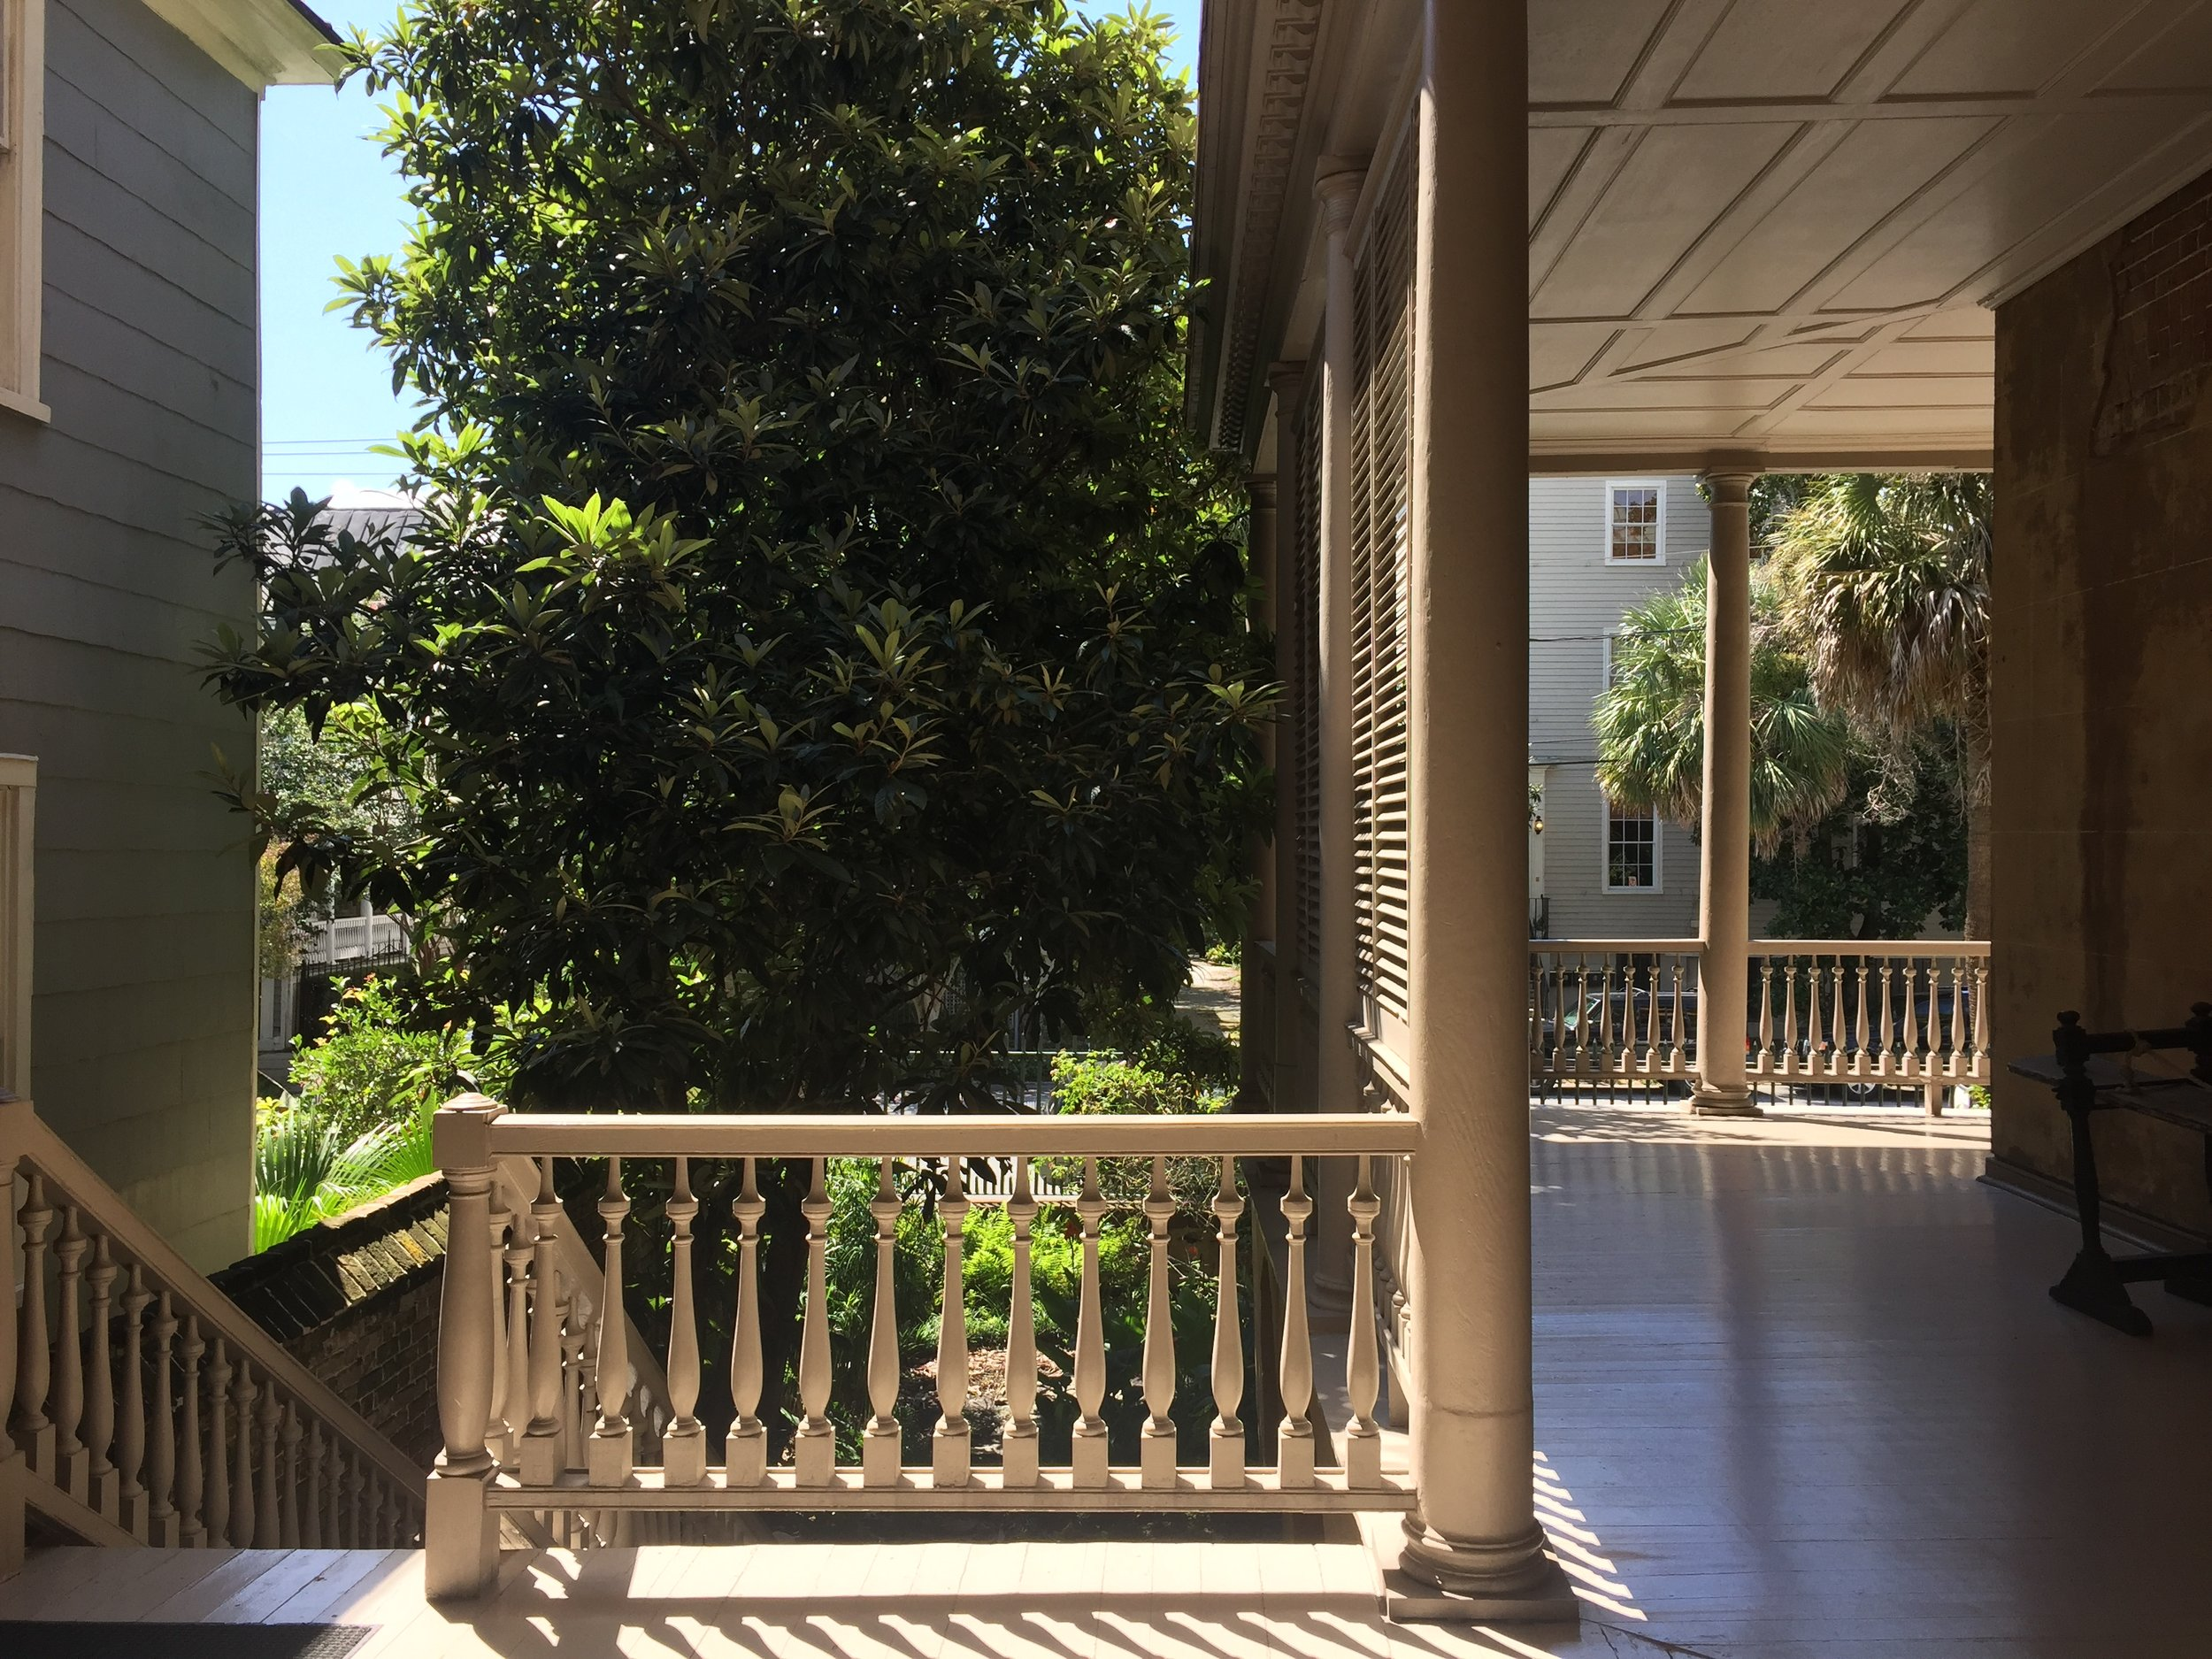 Buildings in the south have two and three story porches, known as piazzas, that are strategically designed to take full advantage of the local winds. The porches also come in handy as a covering when the afternoon rain showers begin.